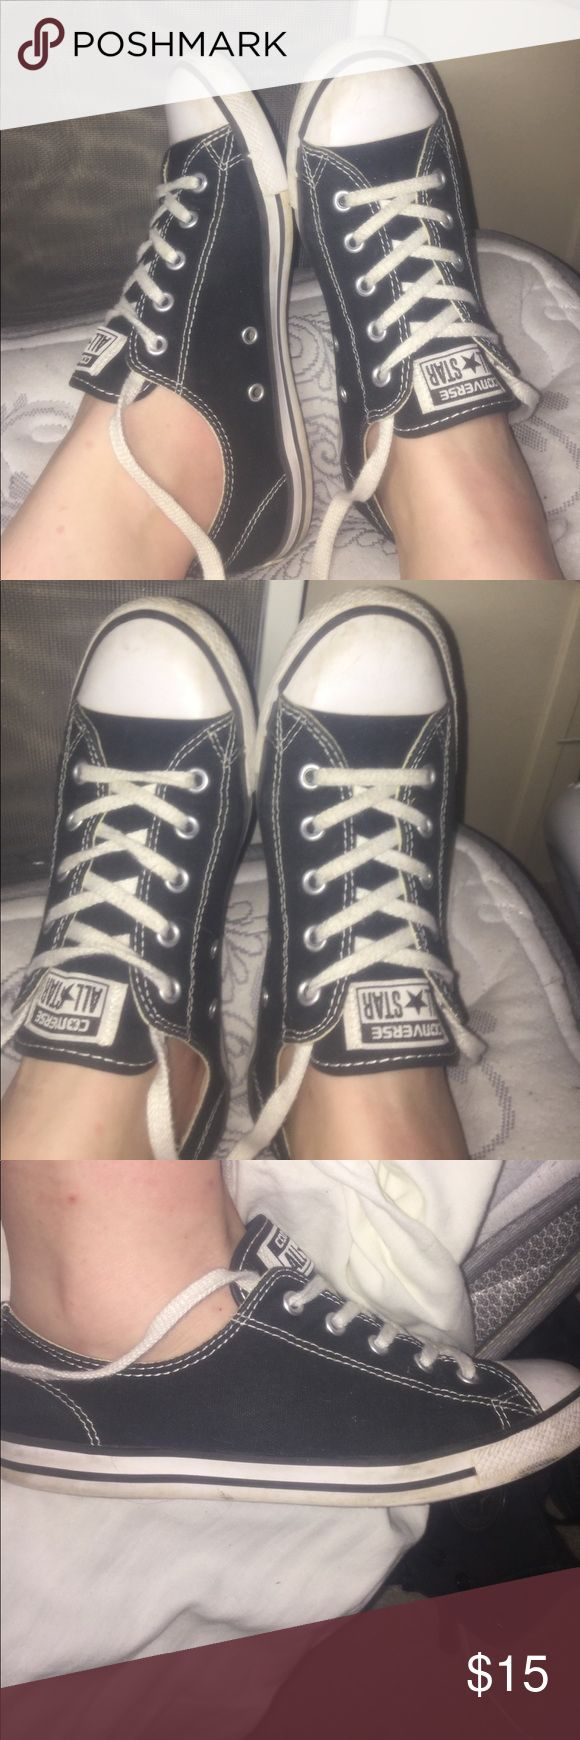 Black/white converse slims🖤 worn.. good condition Black and white, slim sole converse🖤 worn a lot but kept clean and in good condition, a little dirty on the soles, on the toes and in shoelaces. I can wash them before selling them. Willing to trade. Converse Shoes Sneakers